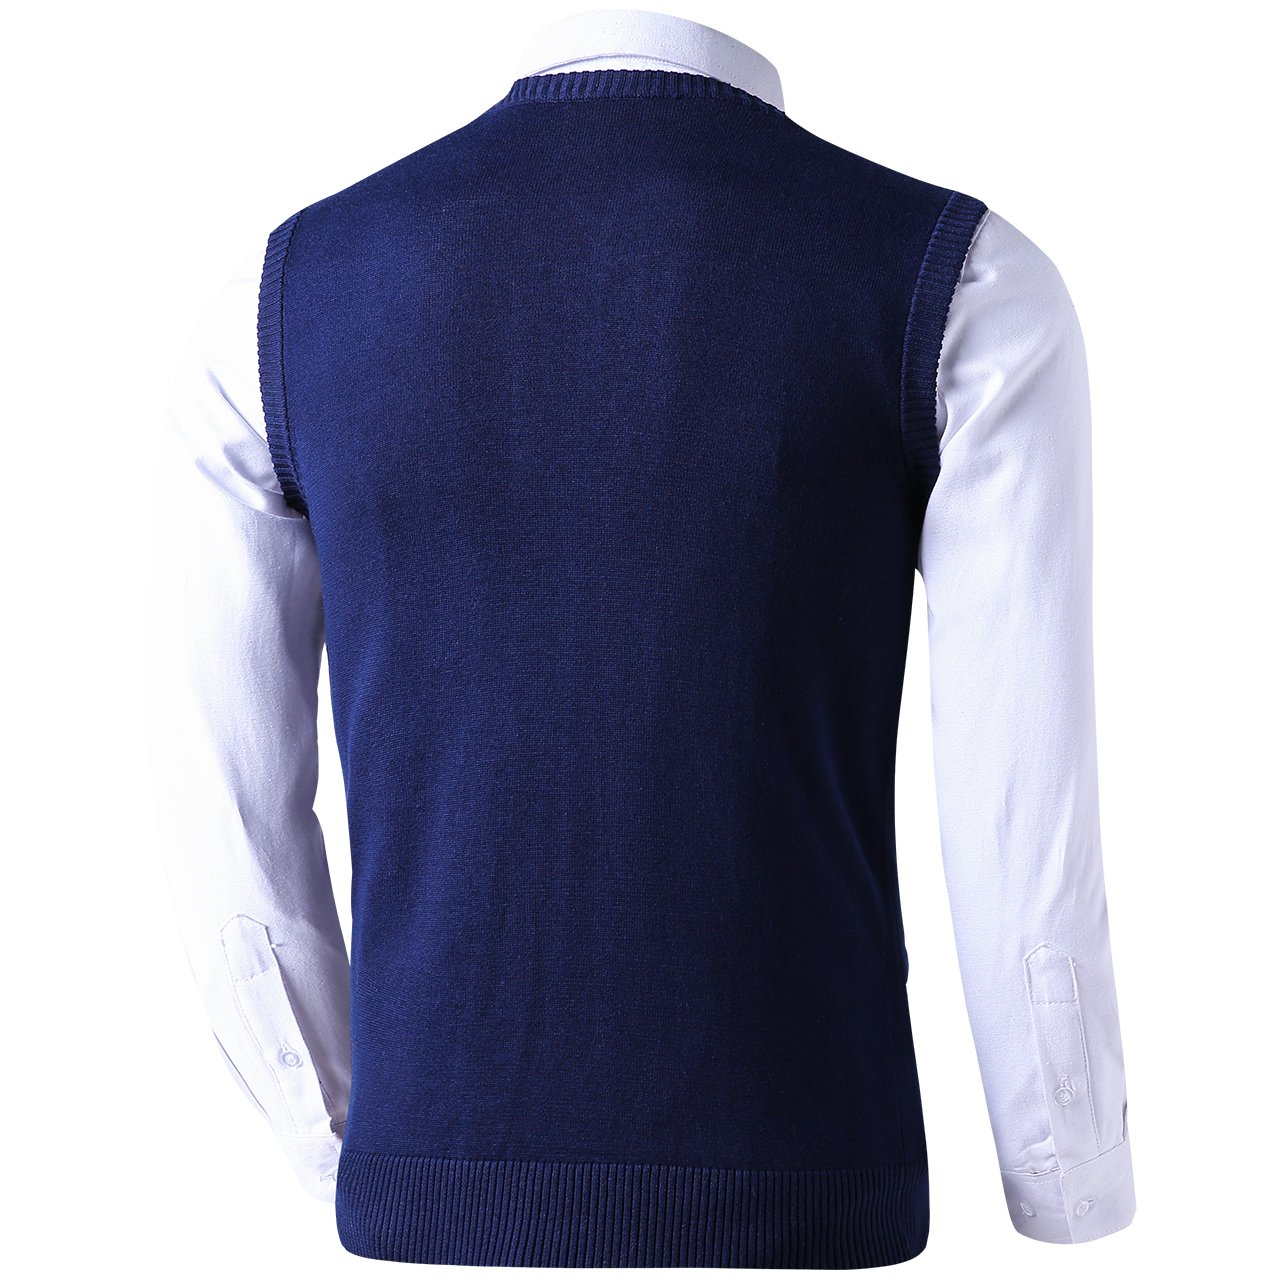 LTIFONE Mens Button Down Sweater Vest Basic Plain Short Sleeve Sweater Cardigan Sweaters Slim Fit with Ribbing Edge 1619